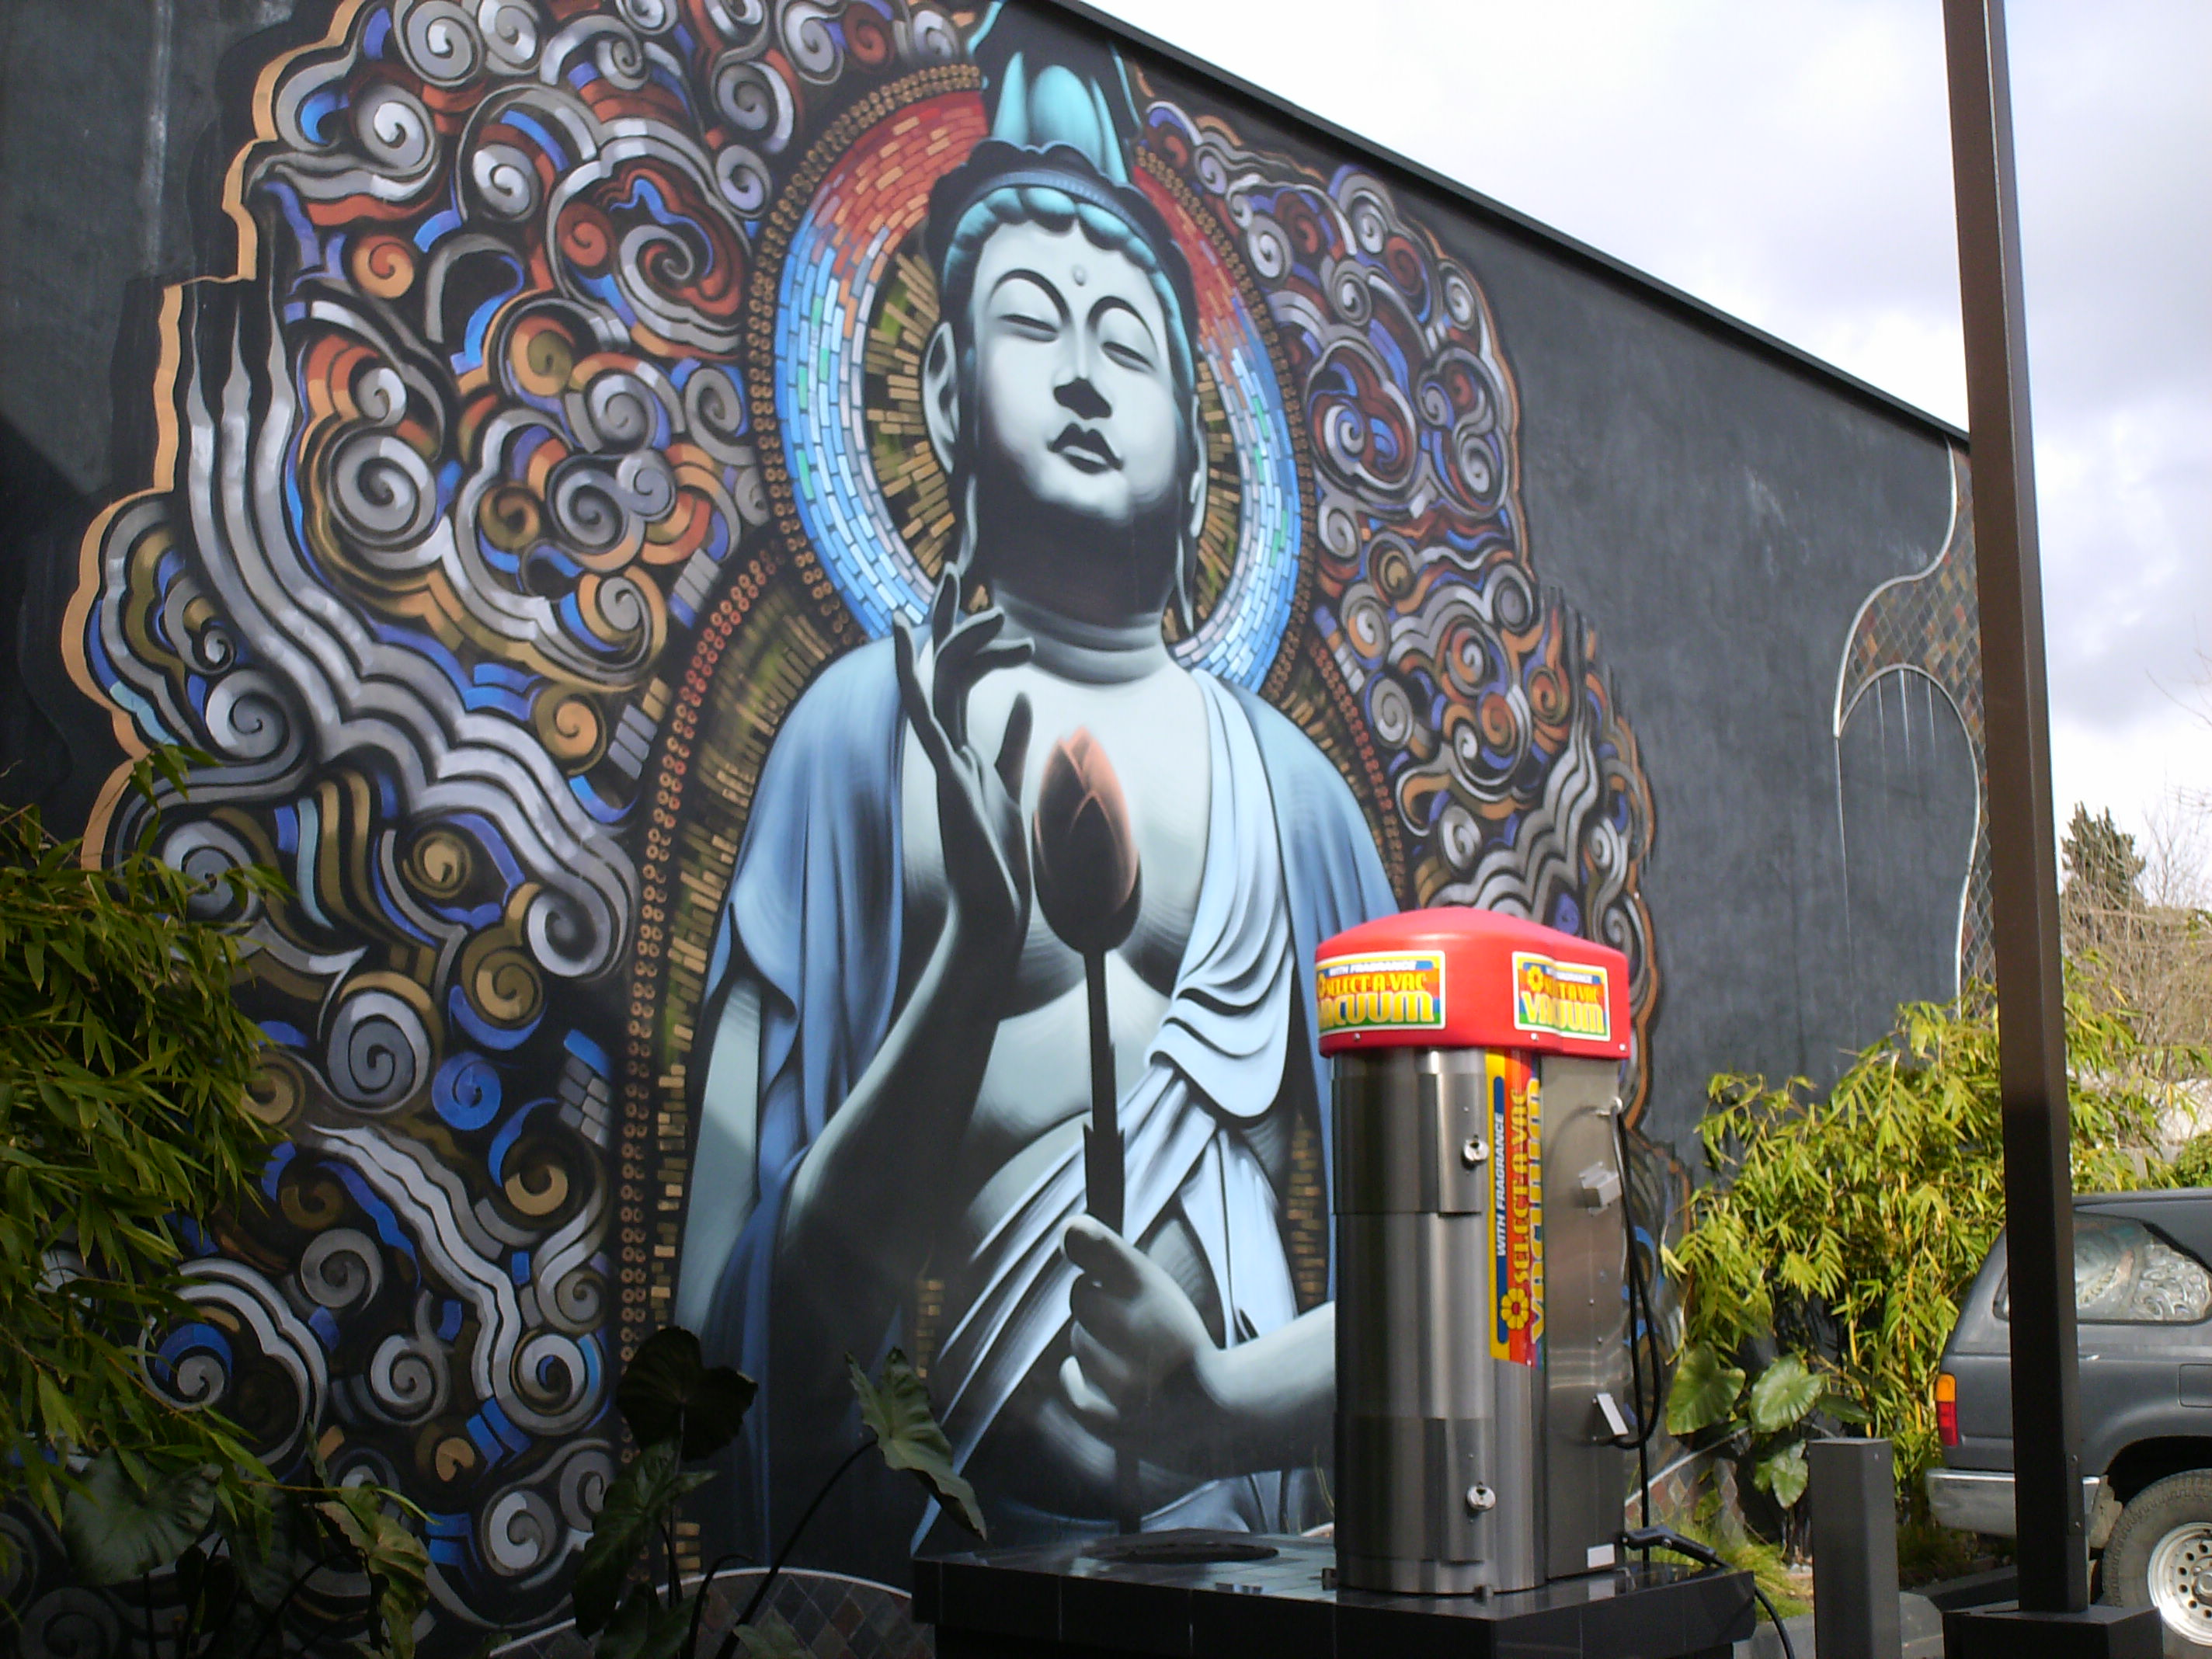 curbedwire blue murals in hollywood mid wilshire 360 south bay curbedwire blue murals in hollywood mid wilshire 360 south bay takes a break